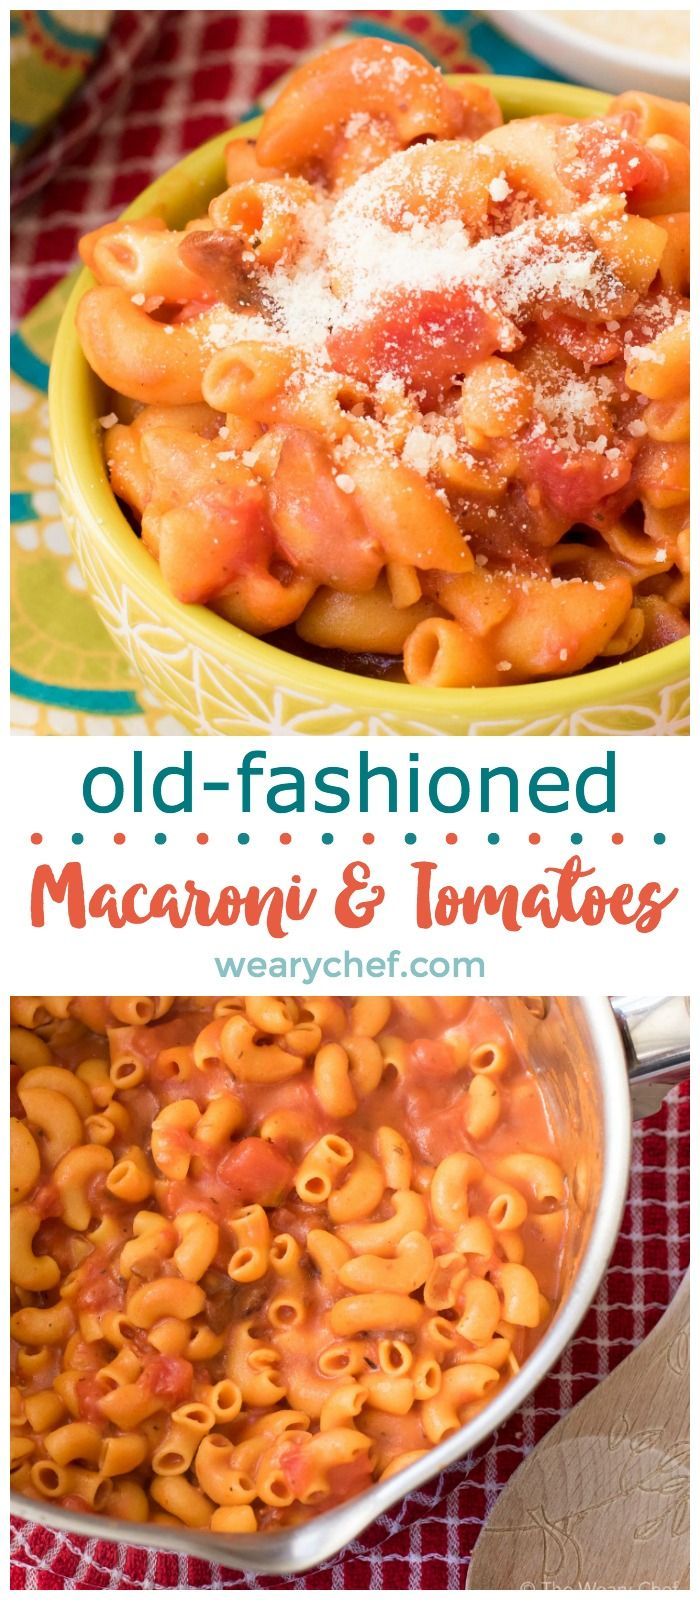 Old Fashioned macaroni and tomatoes is a delightfully quick side dish that could have come from your grandmother's kitchen! It's flavored with bacon, made in one pot, and ready in about 15 minutes!